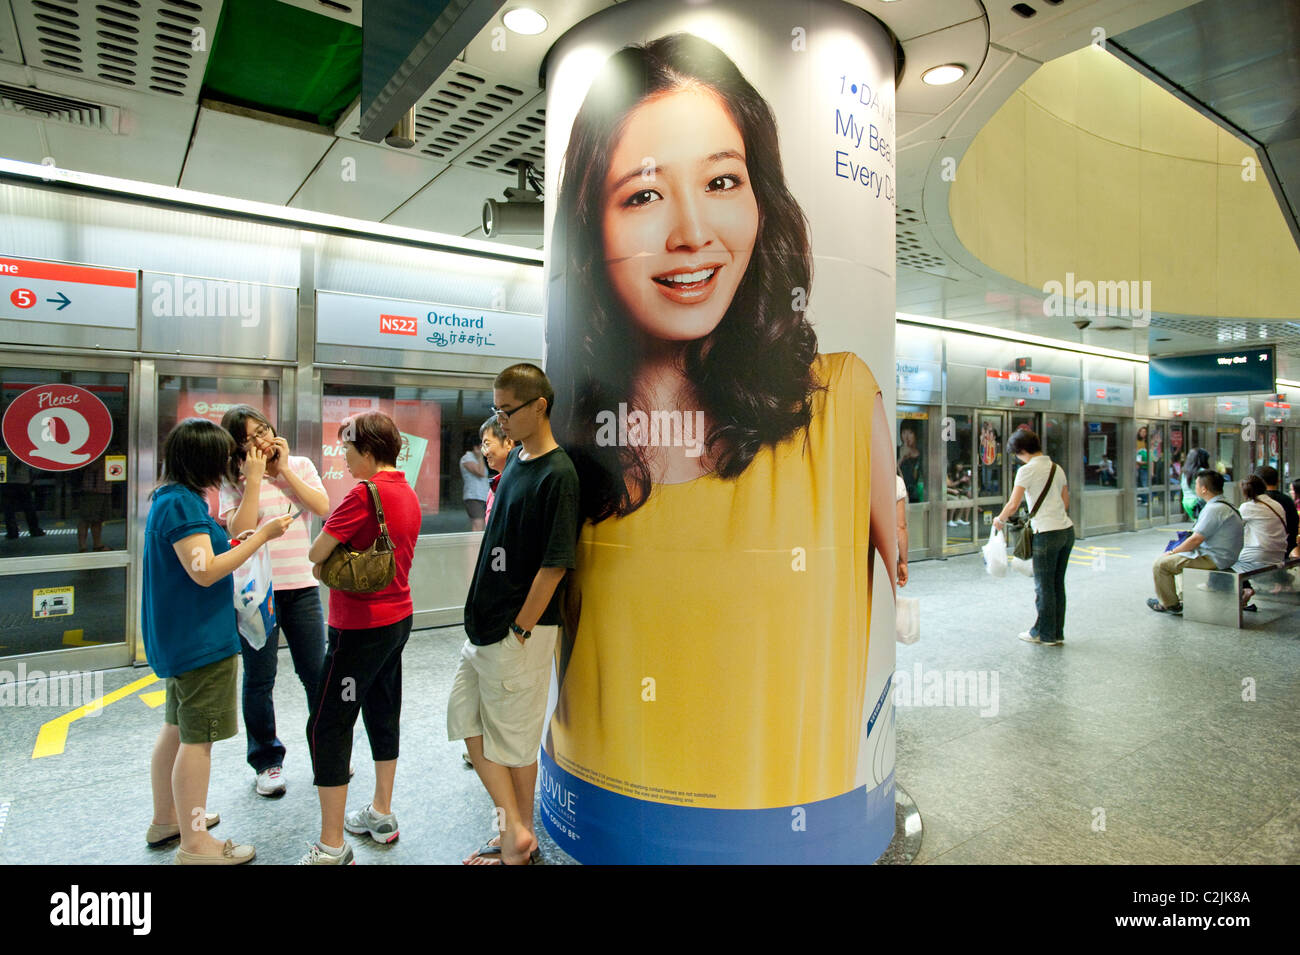 Striking advertising in Singapore's Mass Rapid Transit (MRT) metro system. Here at Orchard Station on the North Stock Photo